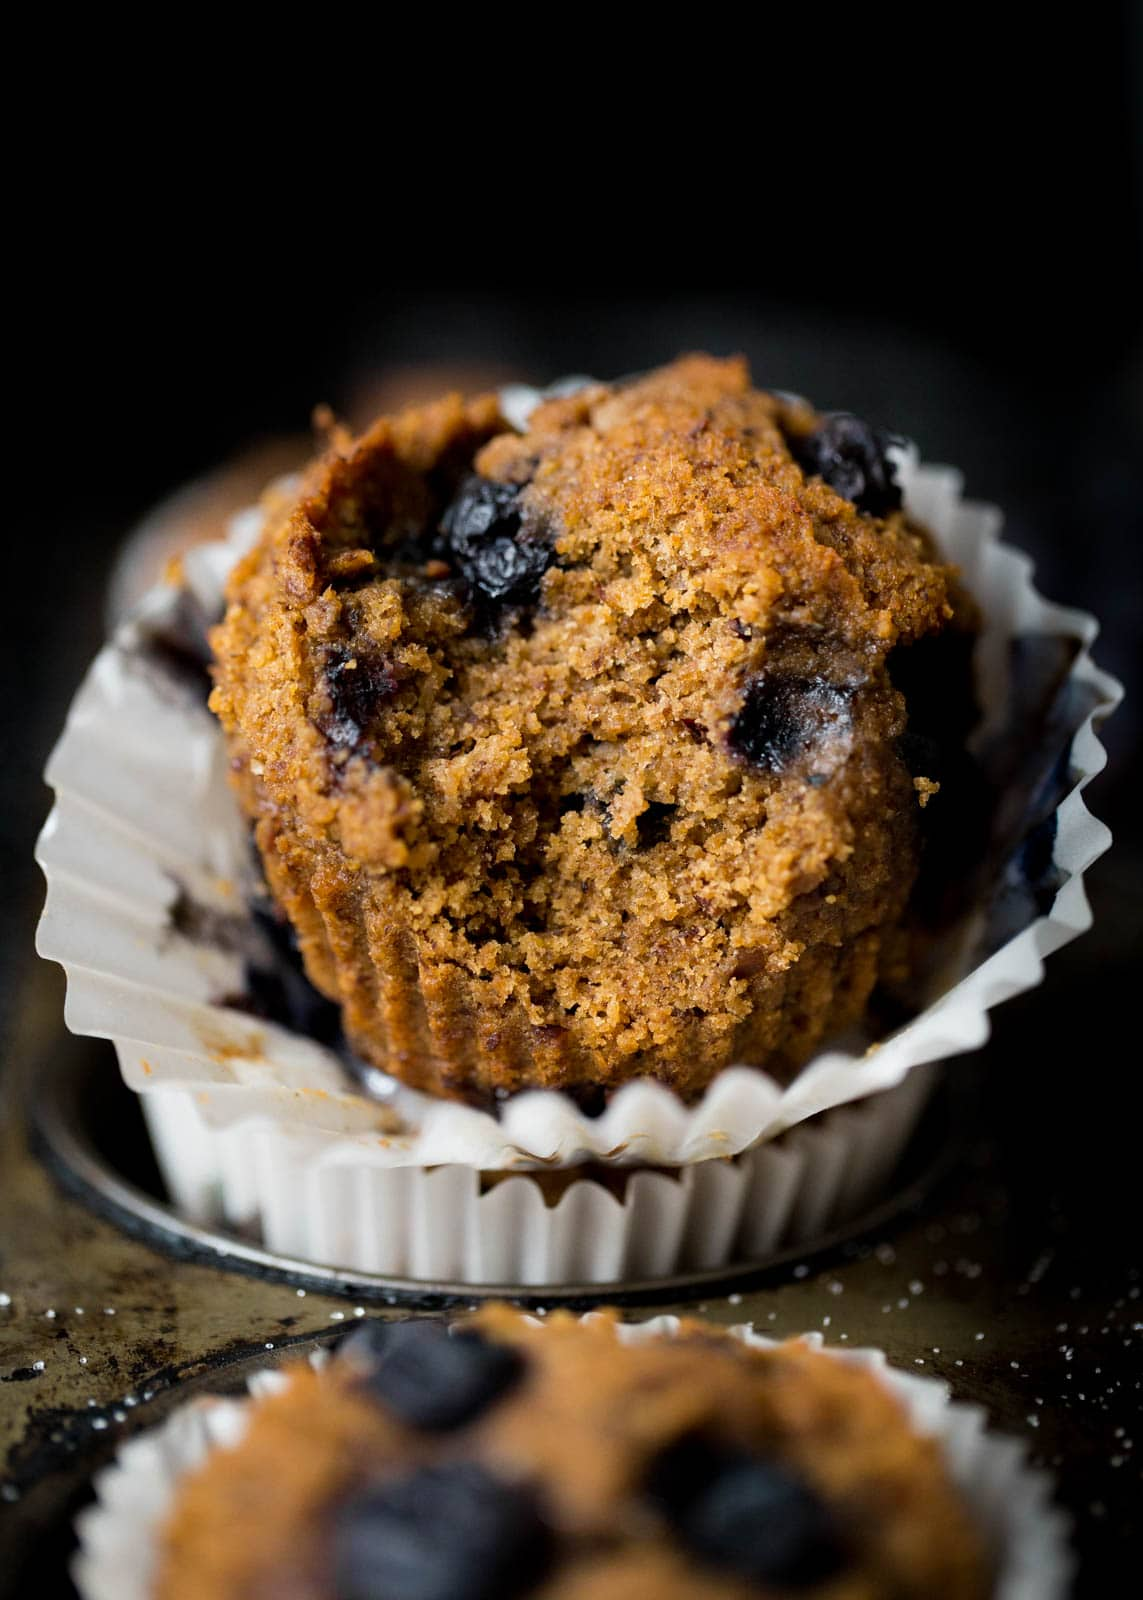 blueberry bran muffin with bite taken out